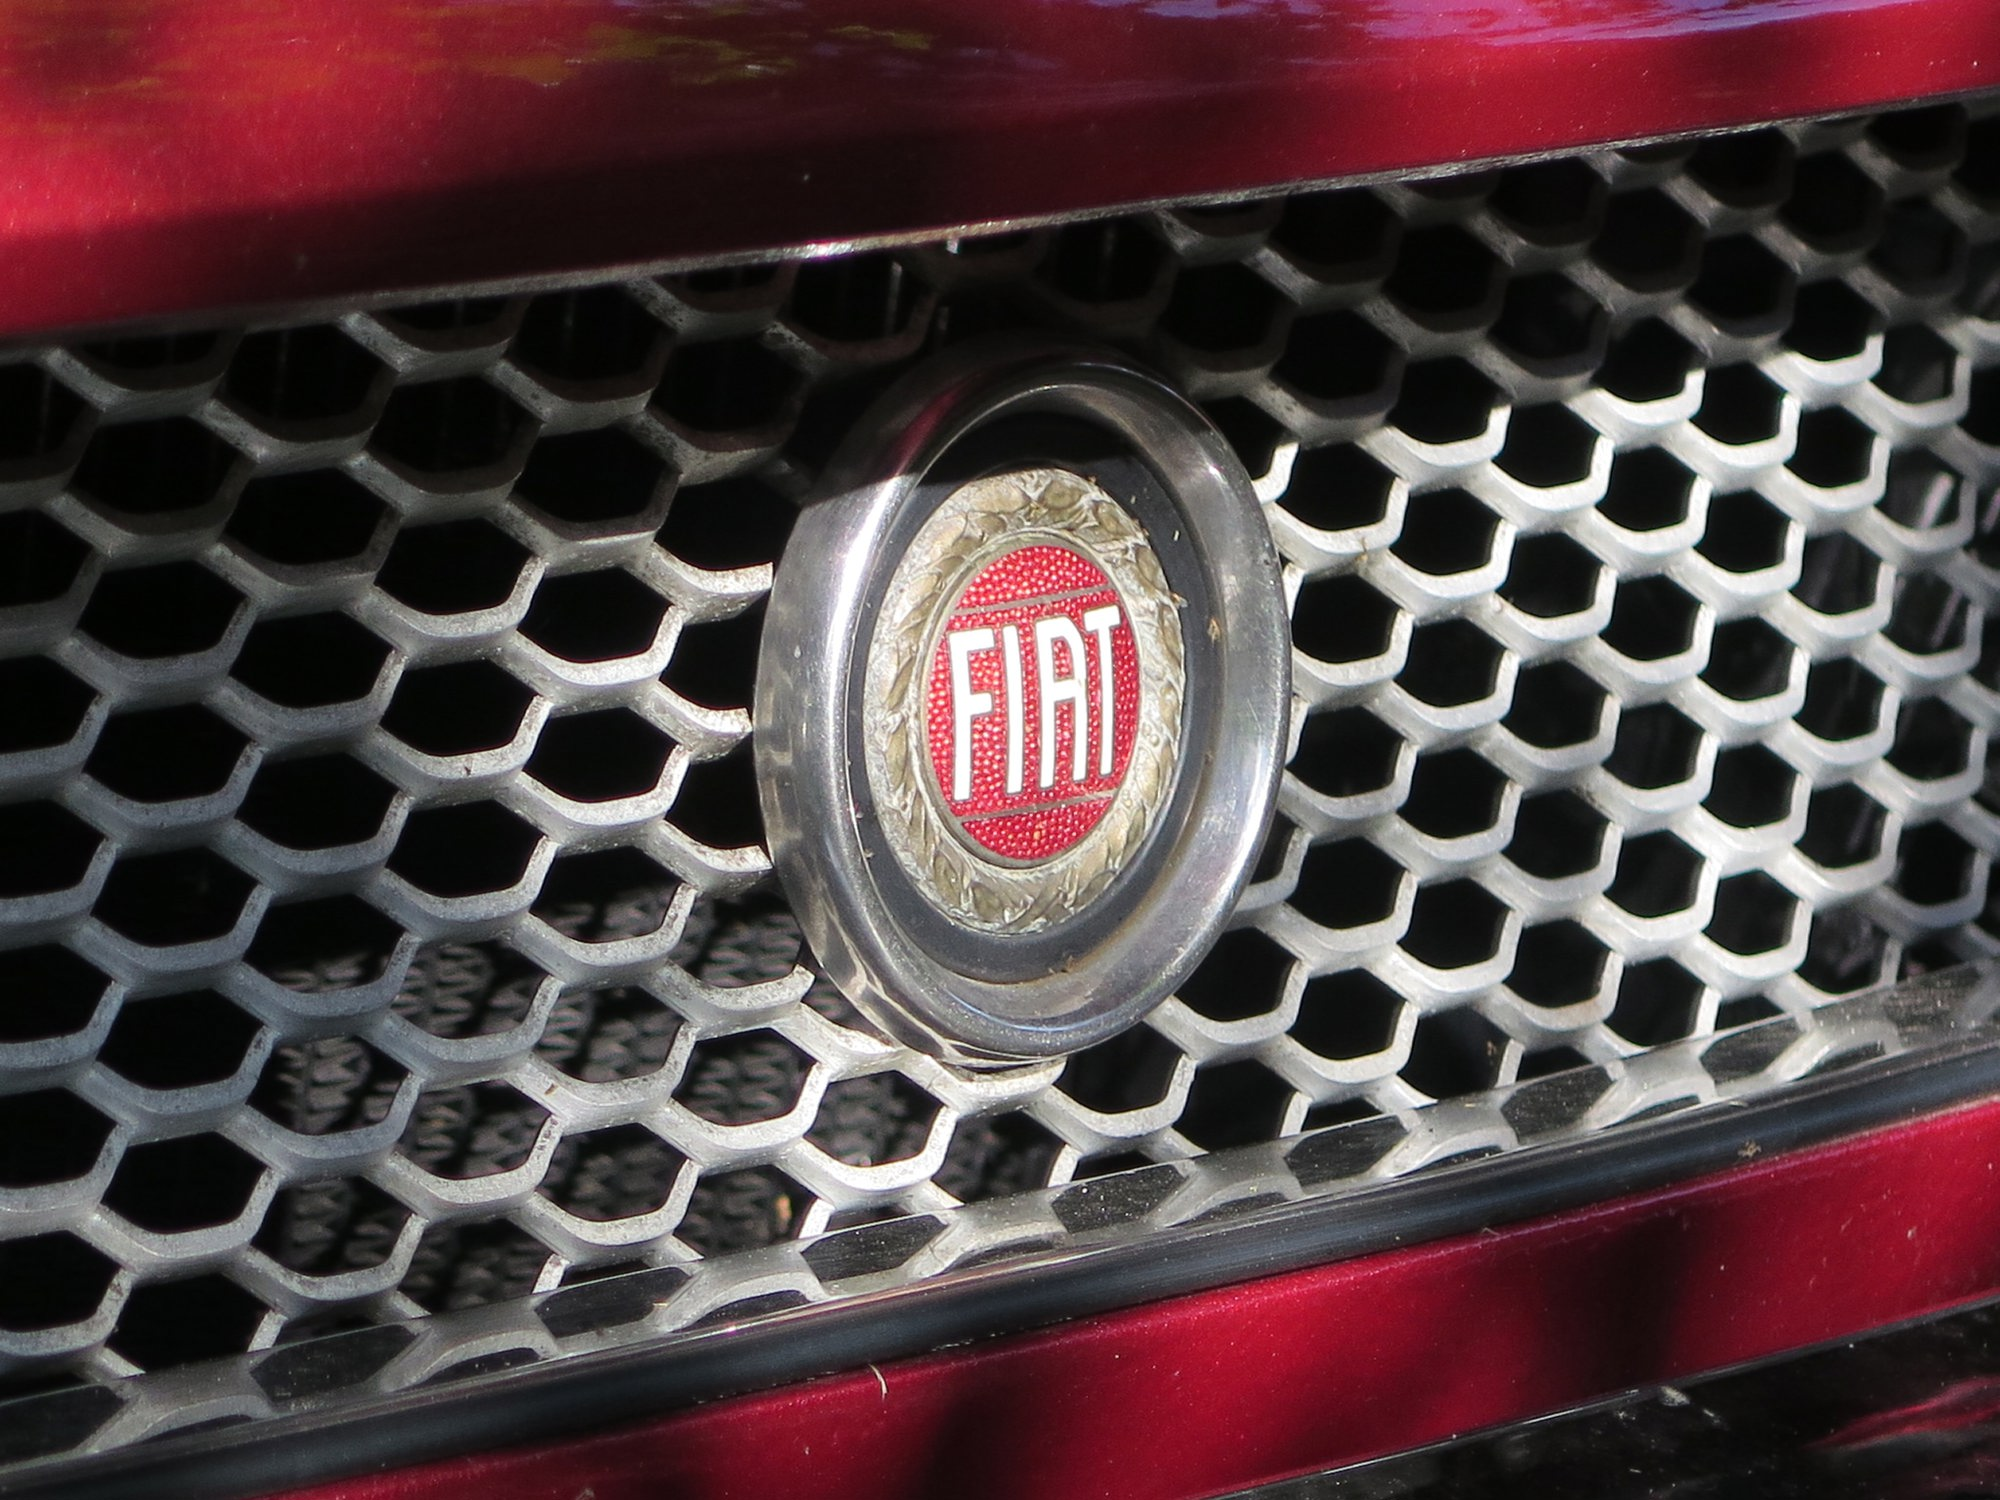 Fiat Chrysler FIAT stock news and analysis